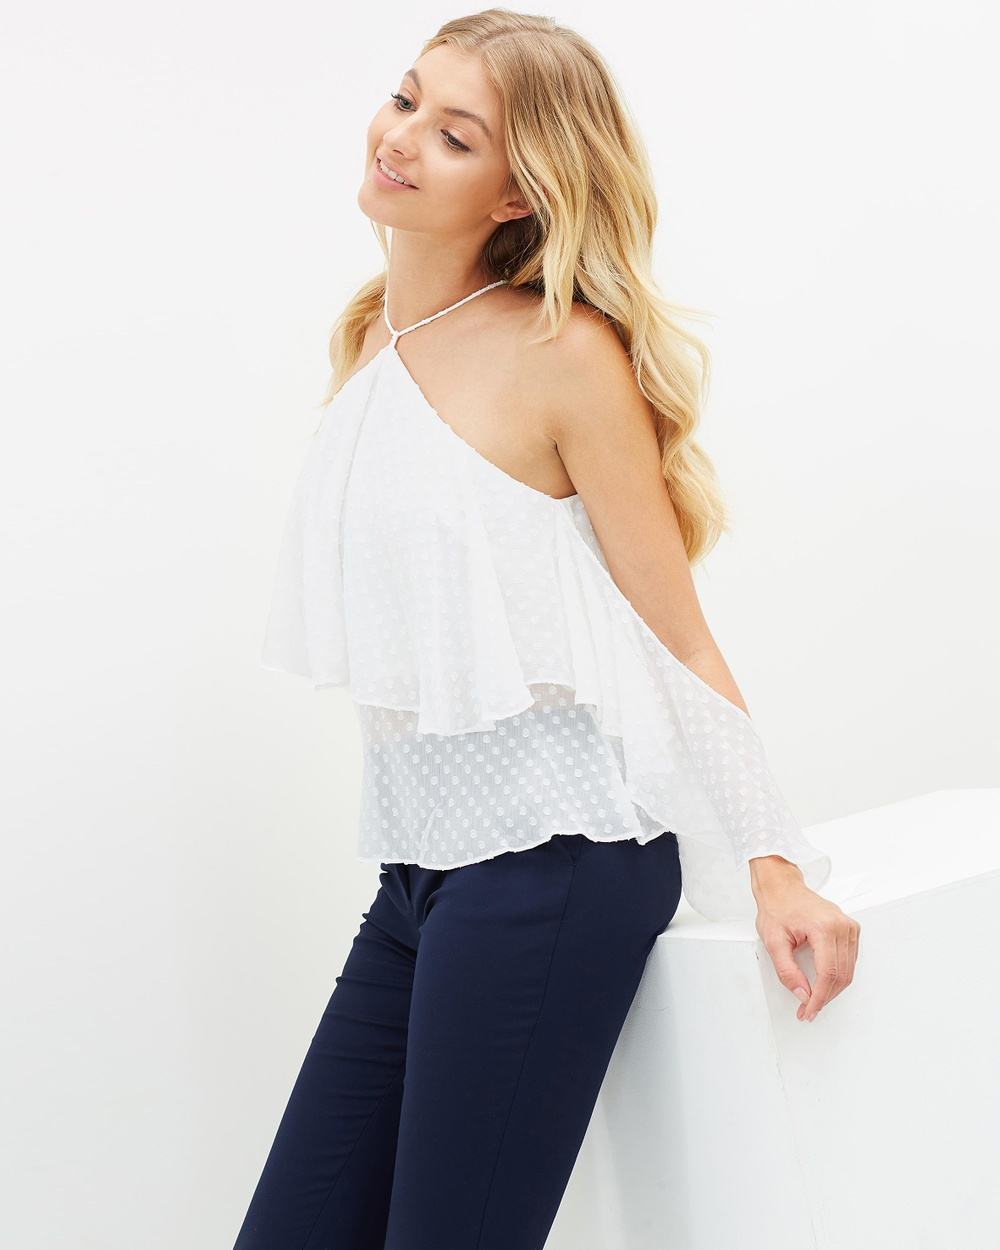 Airlie Versilla Flare Top Tops Ivory Versilla Flare Top